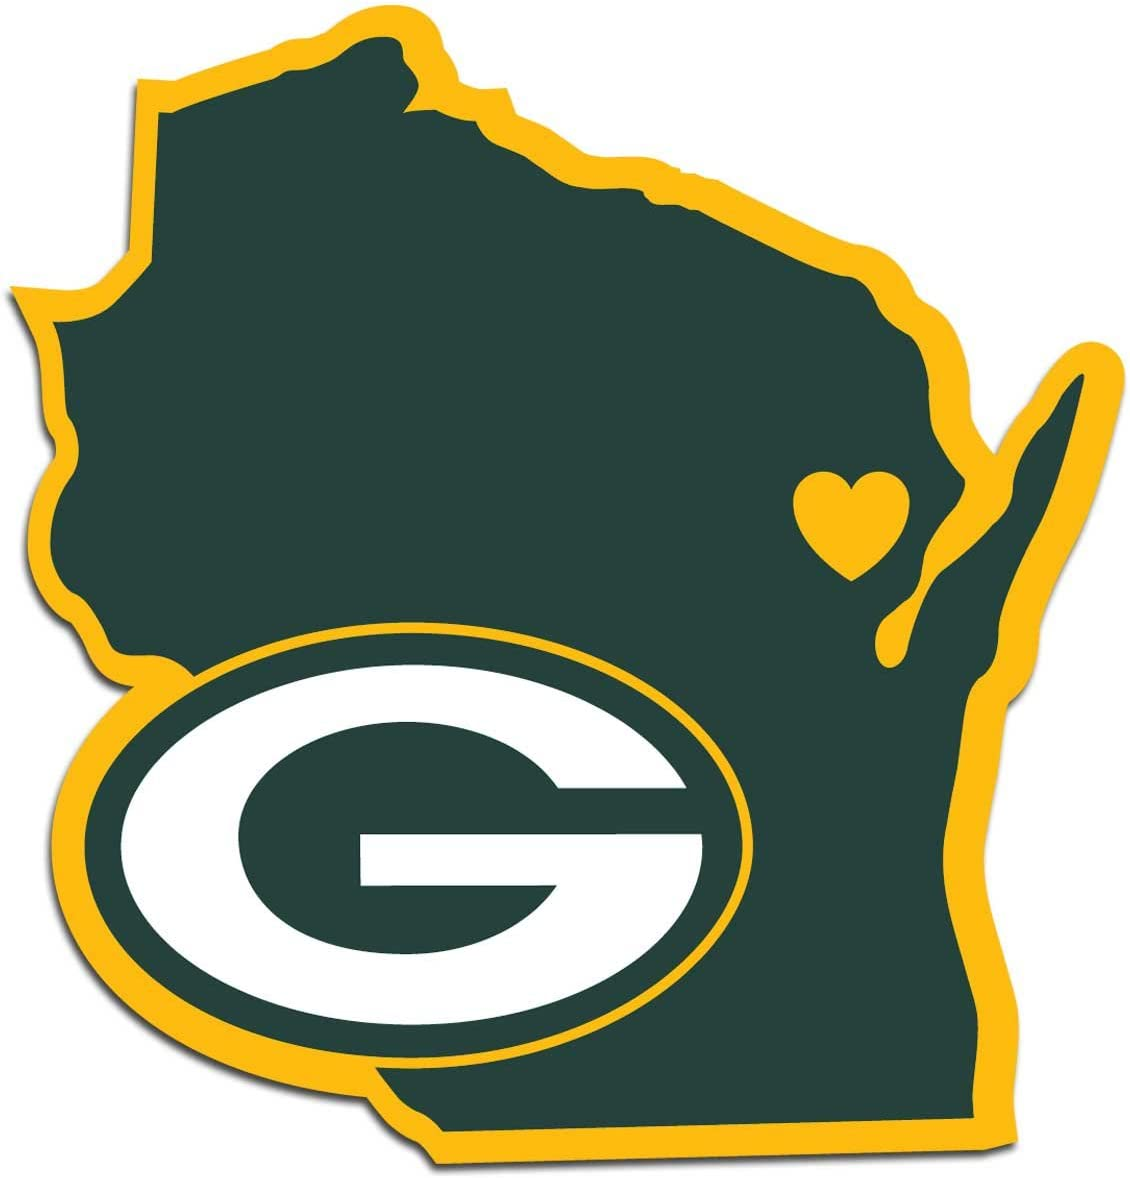 NFL Siskiyou Sports Fan Surprise price Shop Green Packers Home State Decal Bay National uniform free shipping